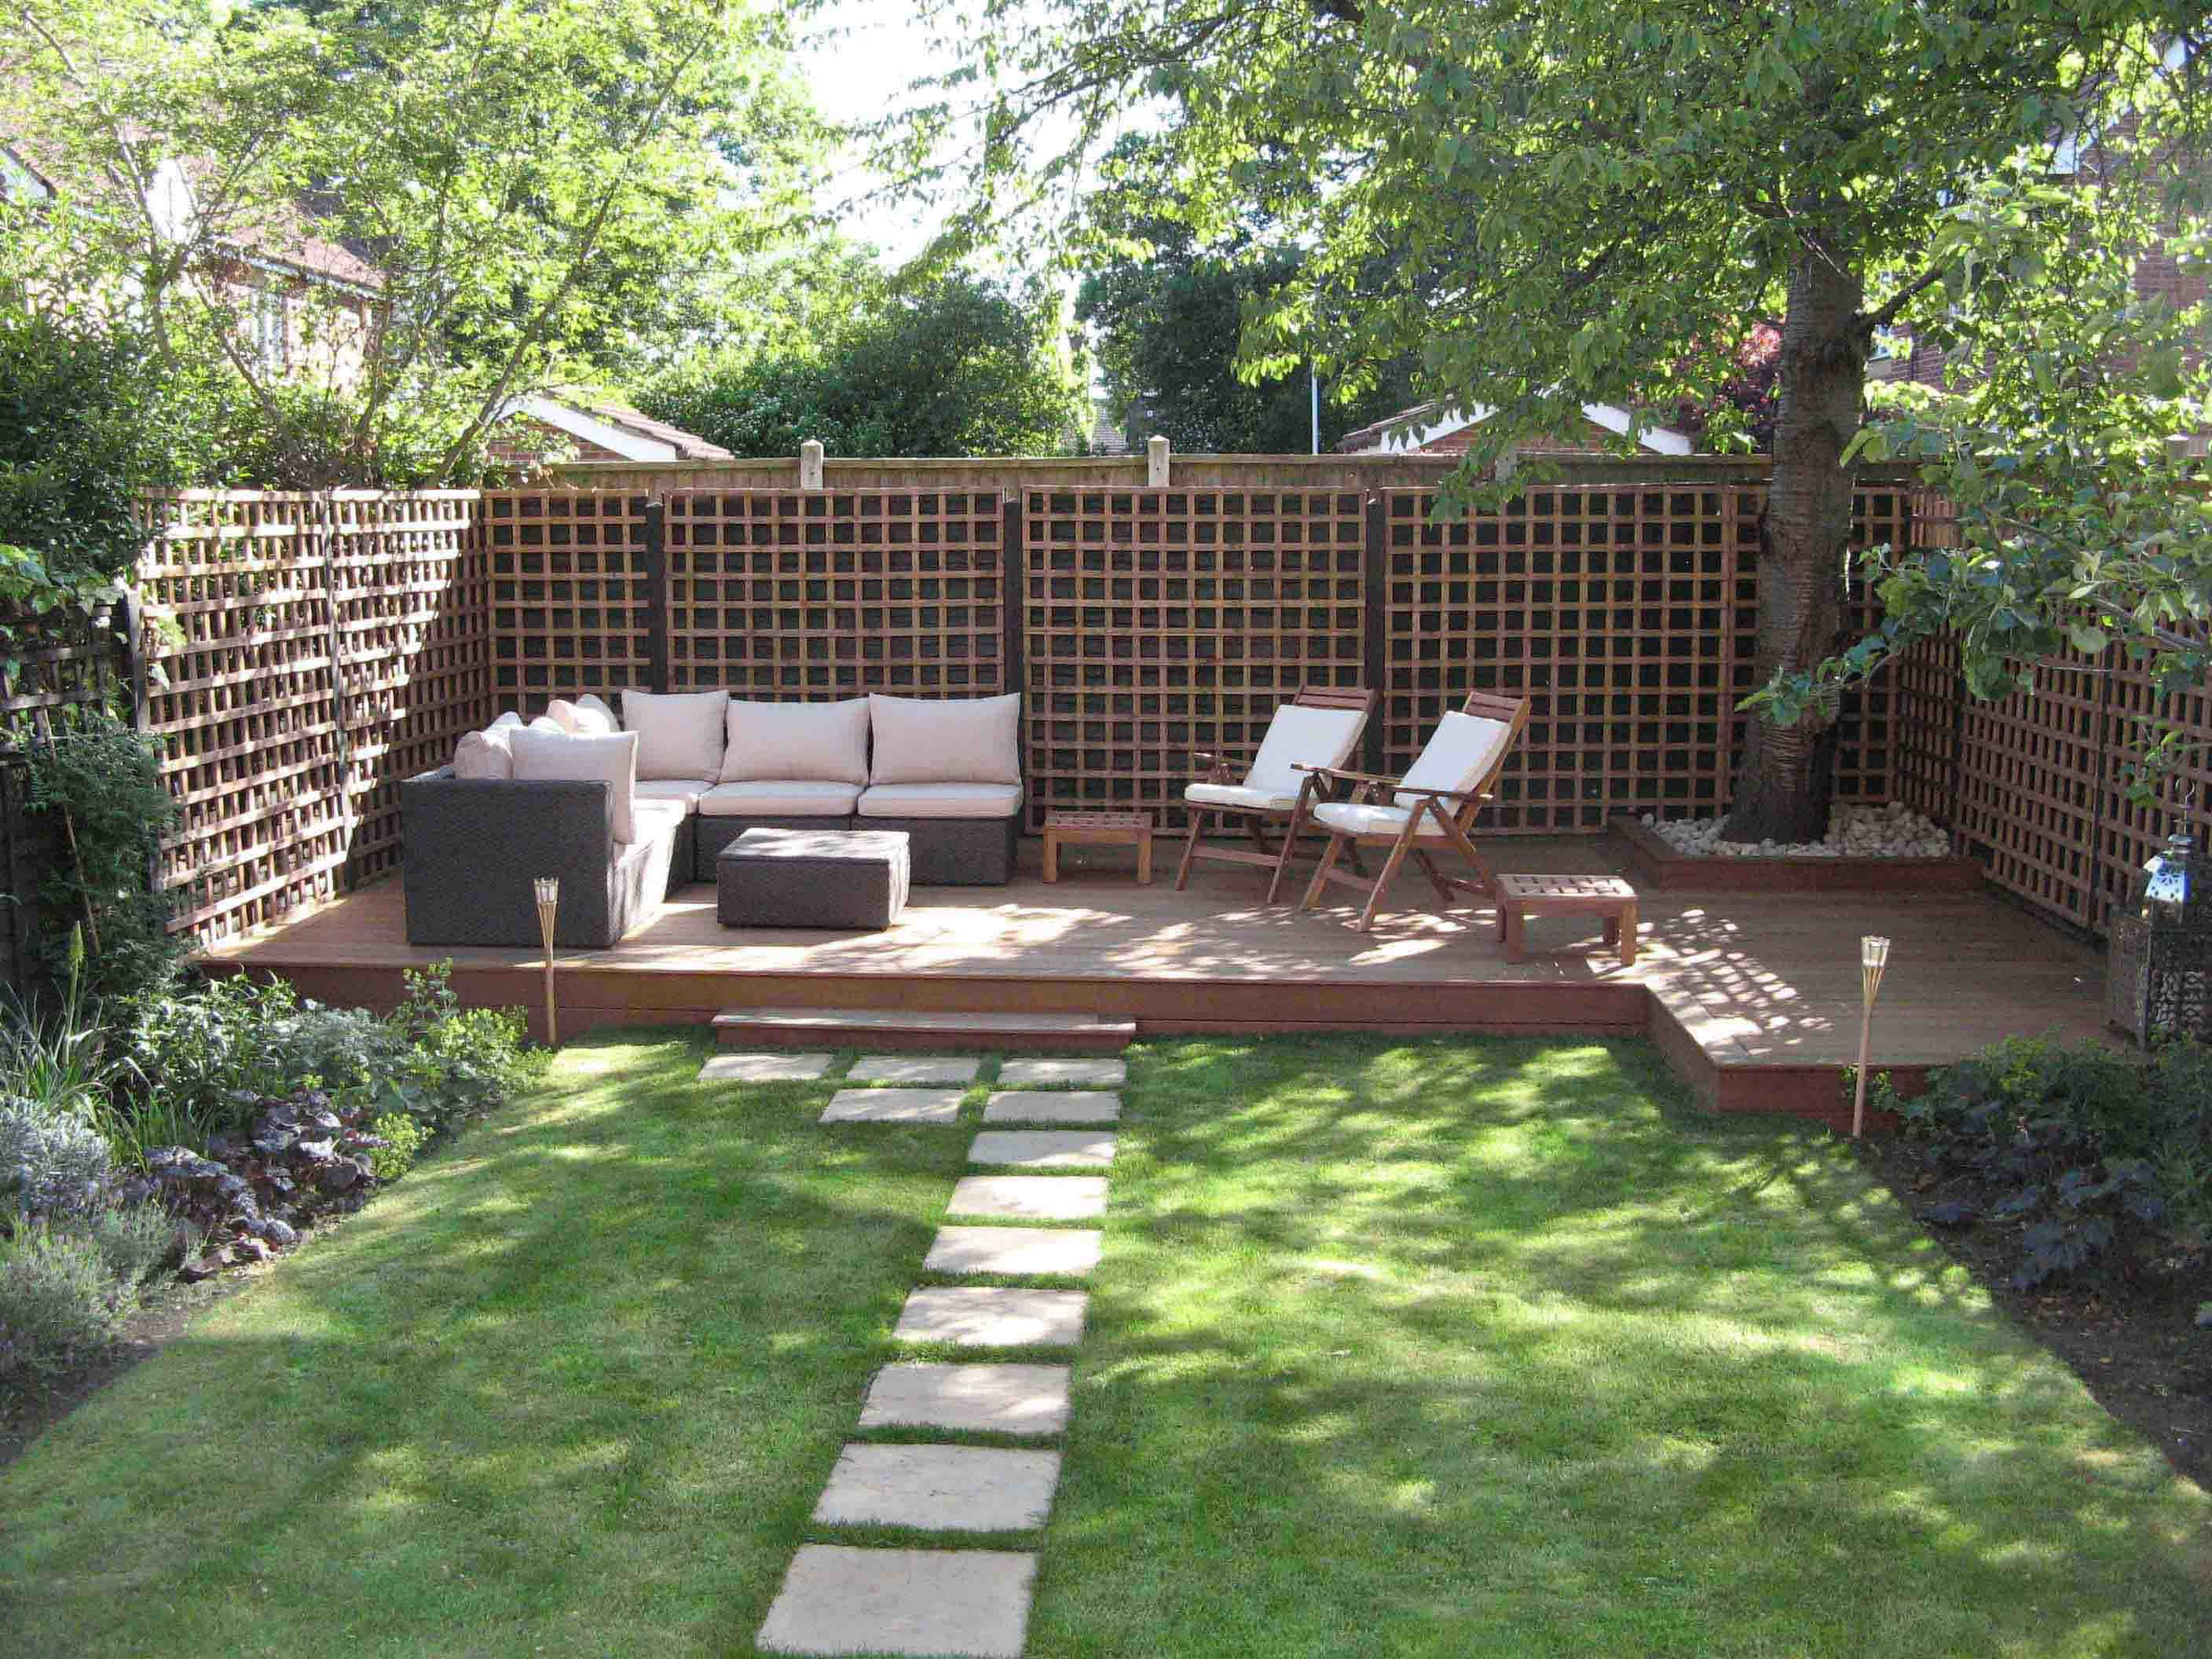 Modern garden design ideas 7 for Garden layout ideas